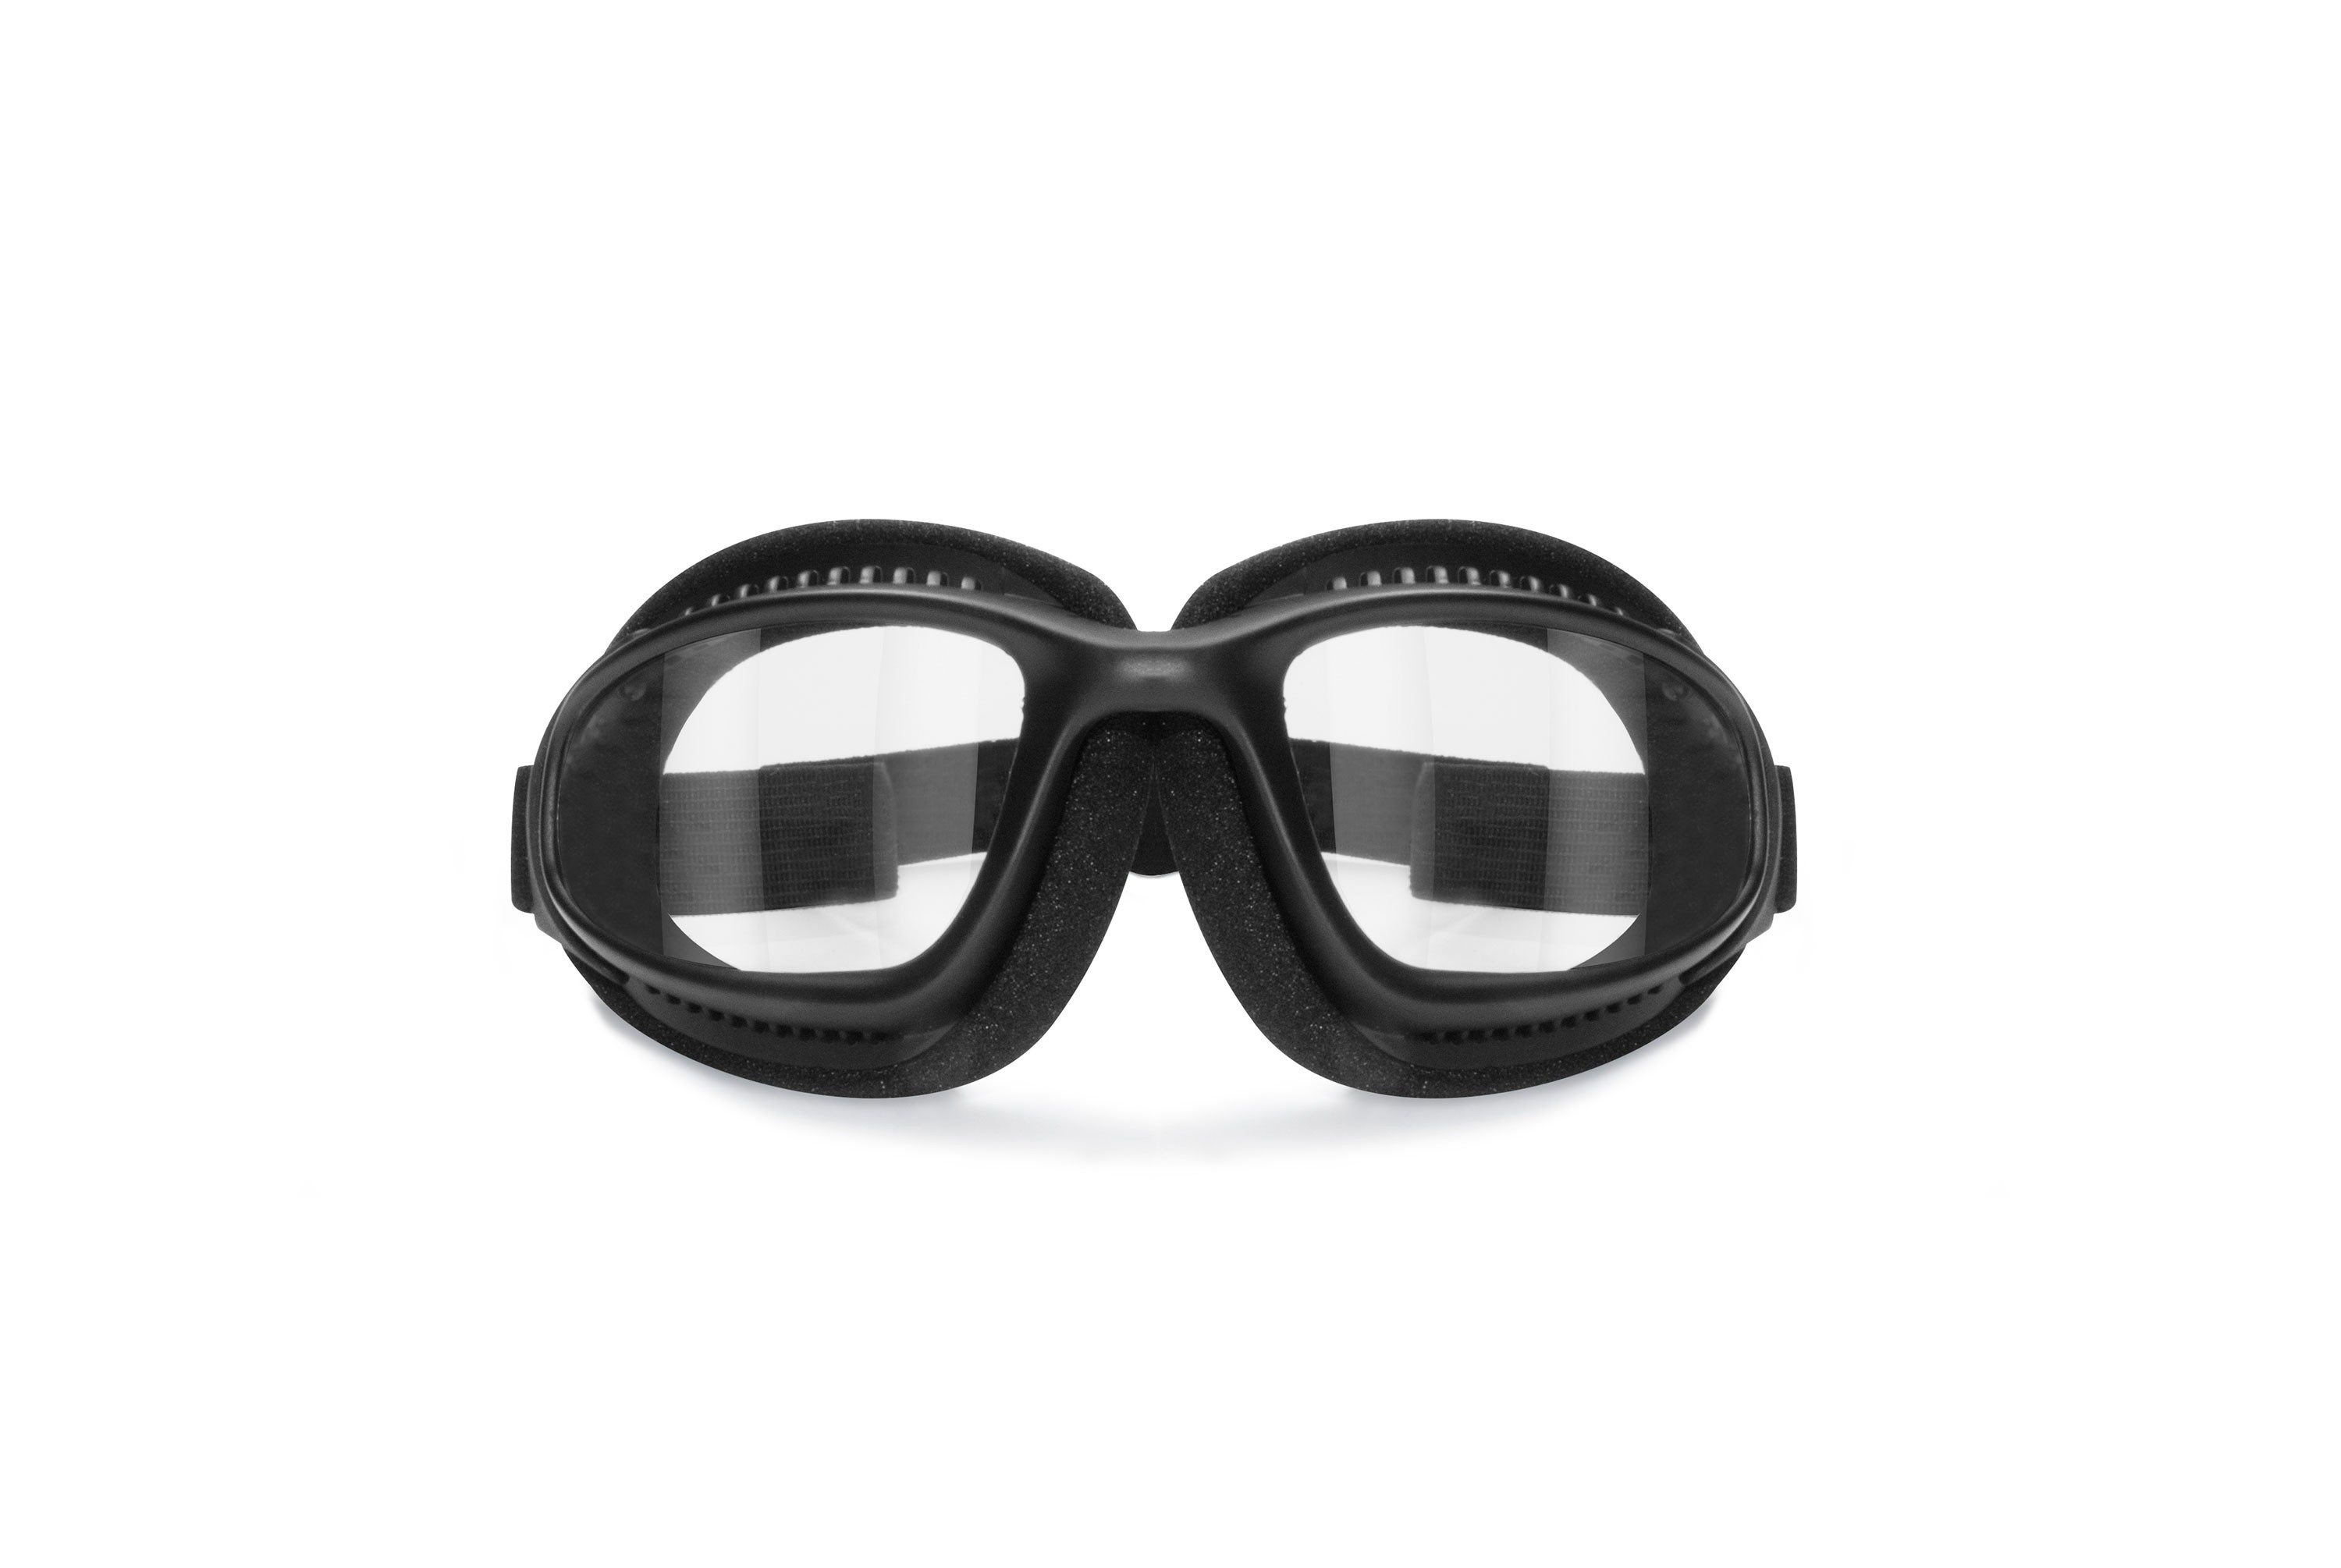 Bertoni Motorcycle Goggles for Helmets with Outriggers - Ventilated Antifog Lens - Adjustable Strap - Mat Black - AF113